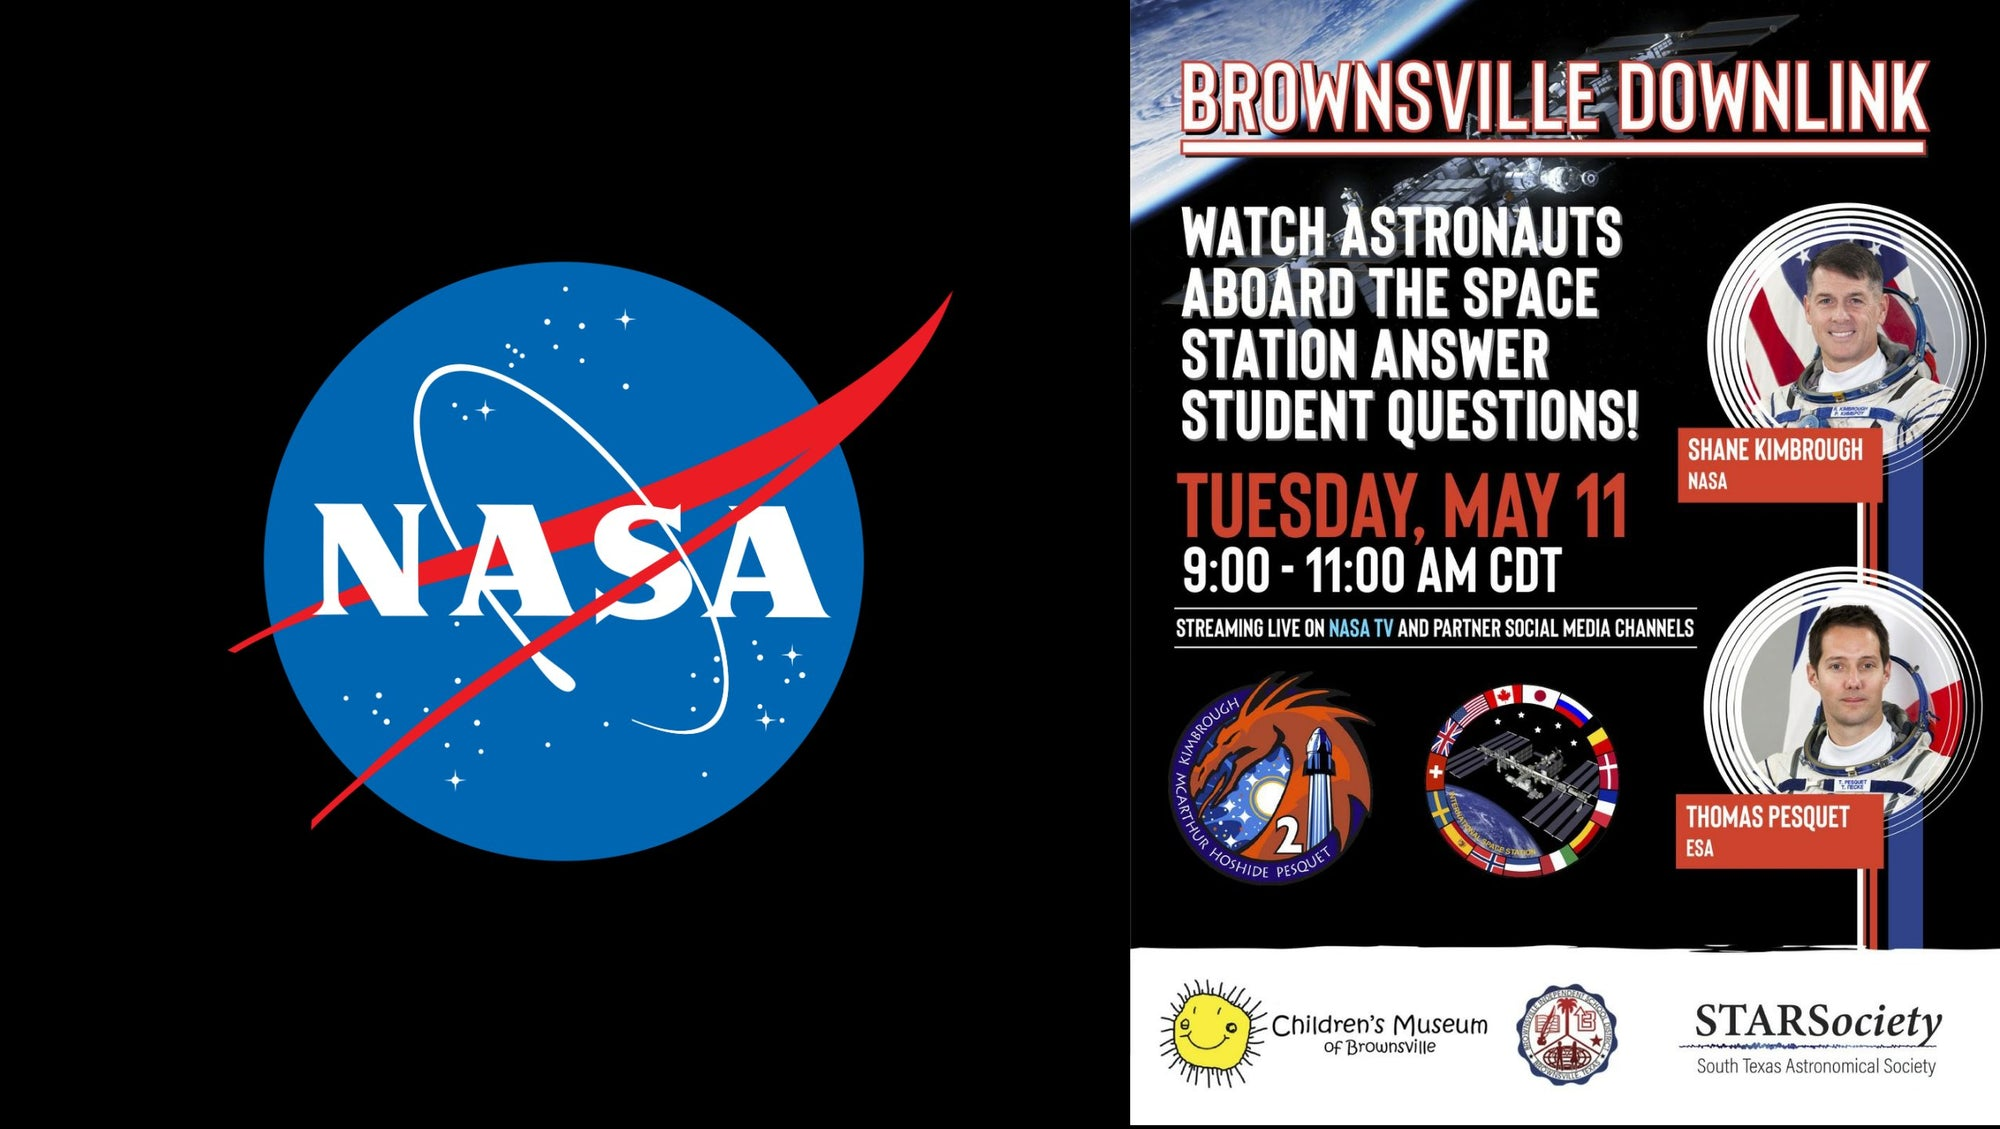 SpaceX Crew-2 Astronauts At The Space Station Will Answer Brownsville Texas Students Questions